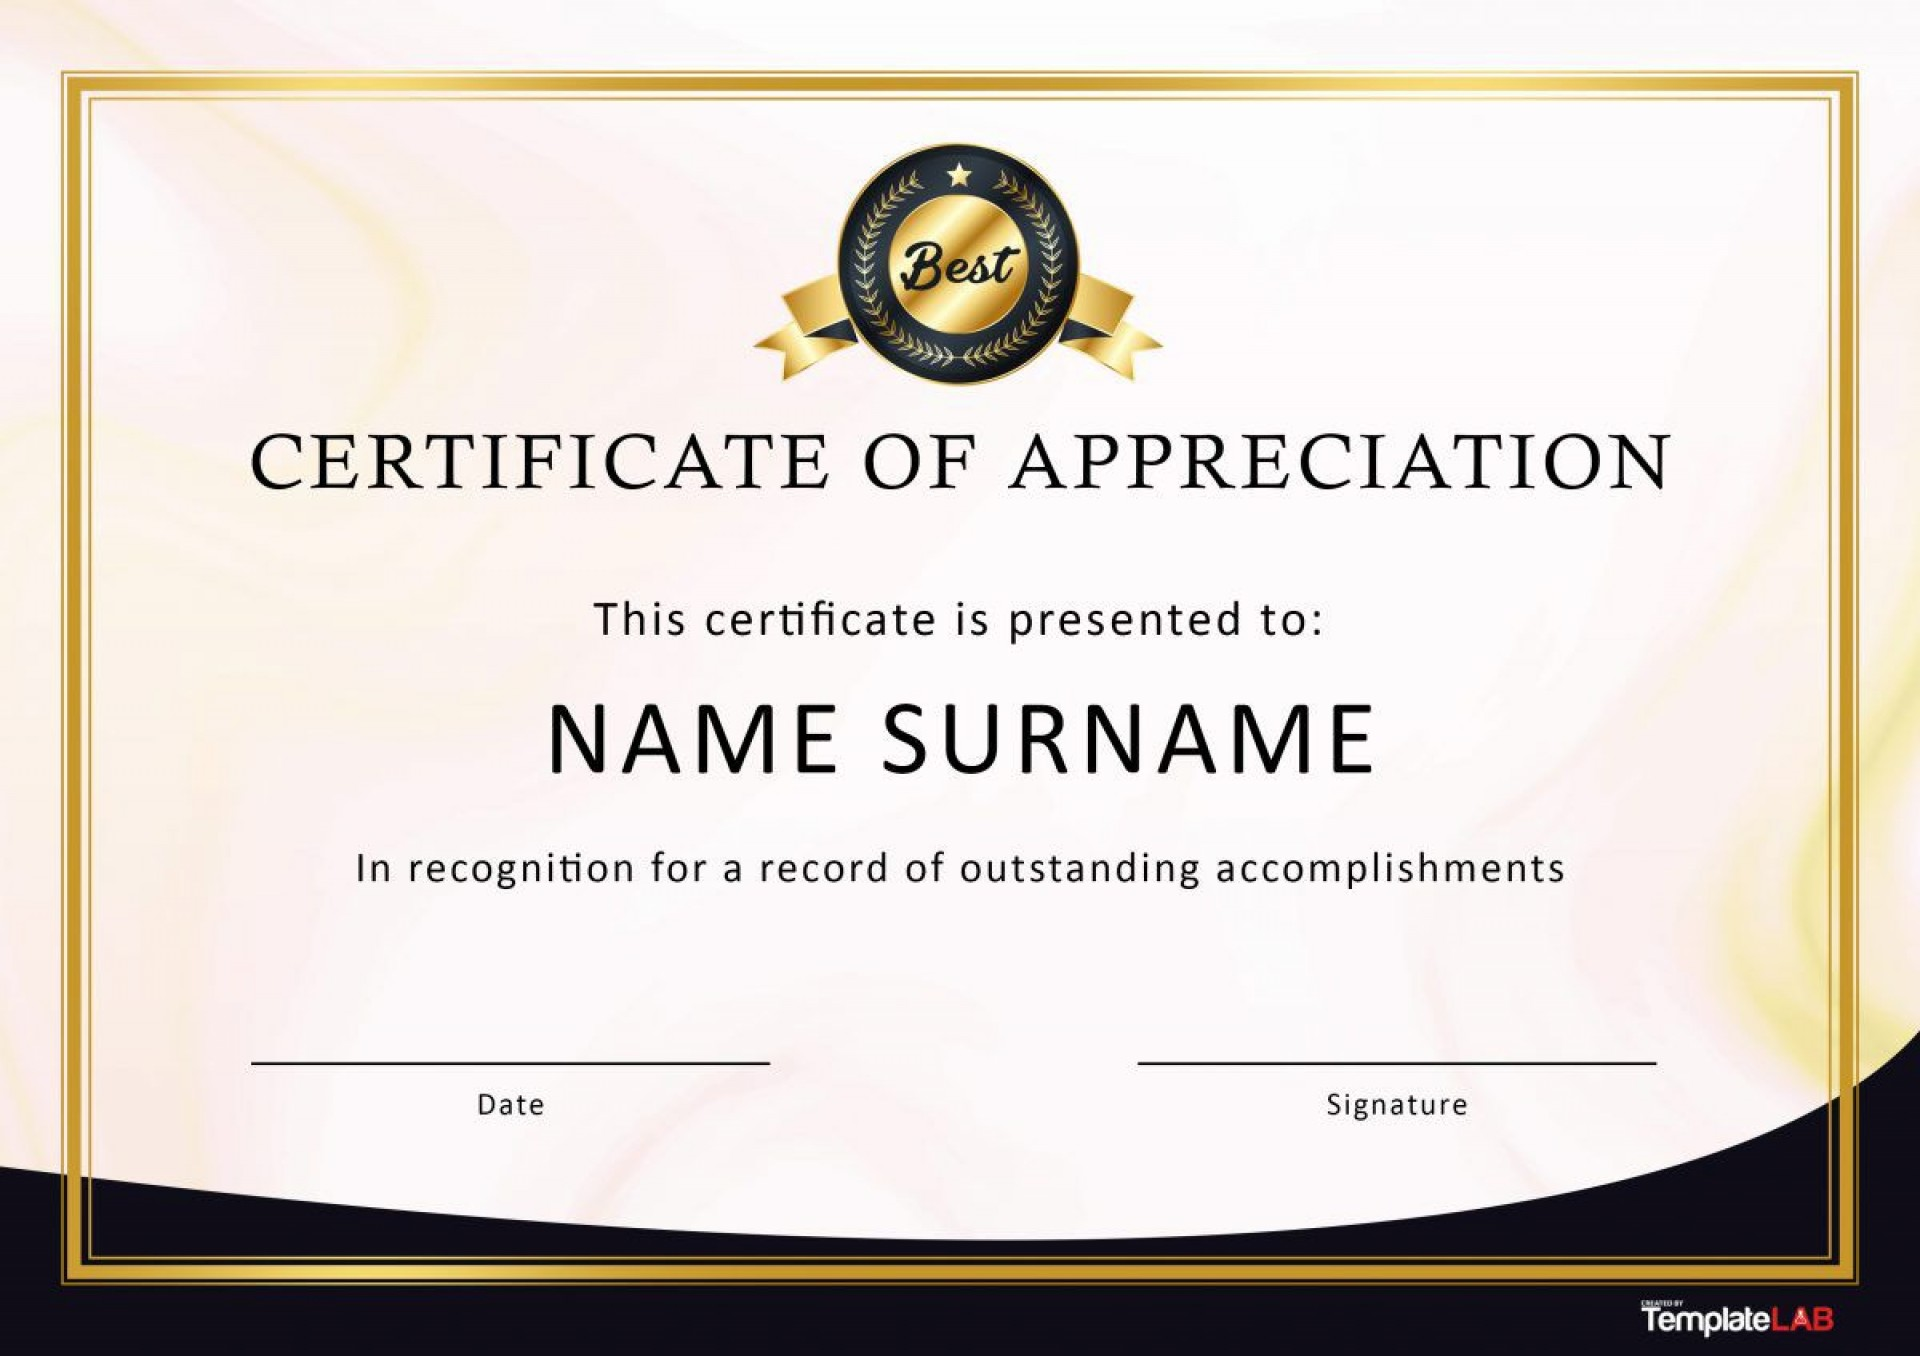 007 Unforgettable Certificate Of Appreciation Template Free Sample  Microsoft Word Download Publisher Editable1920